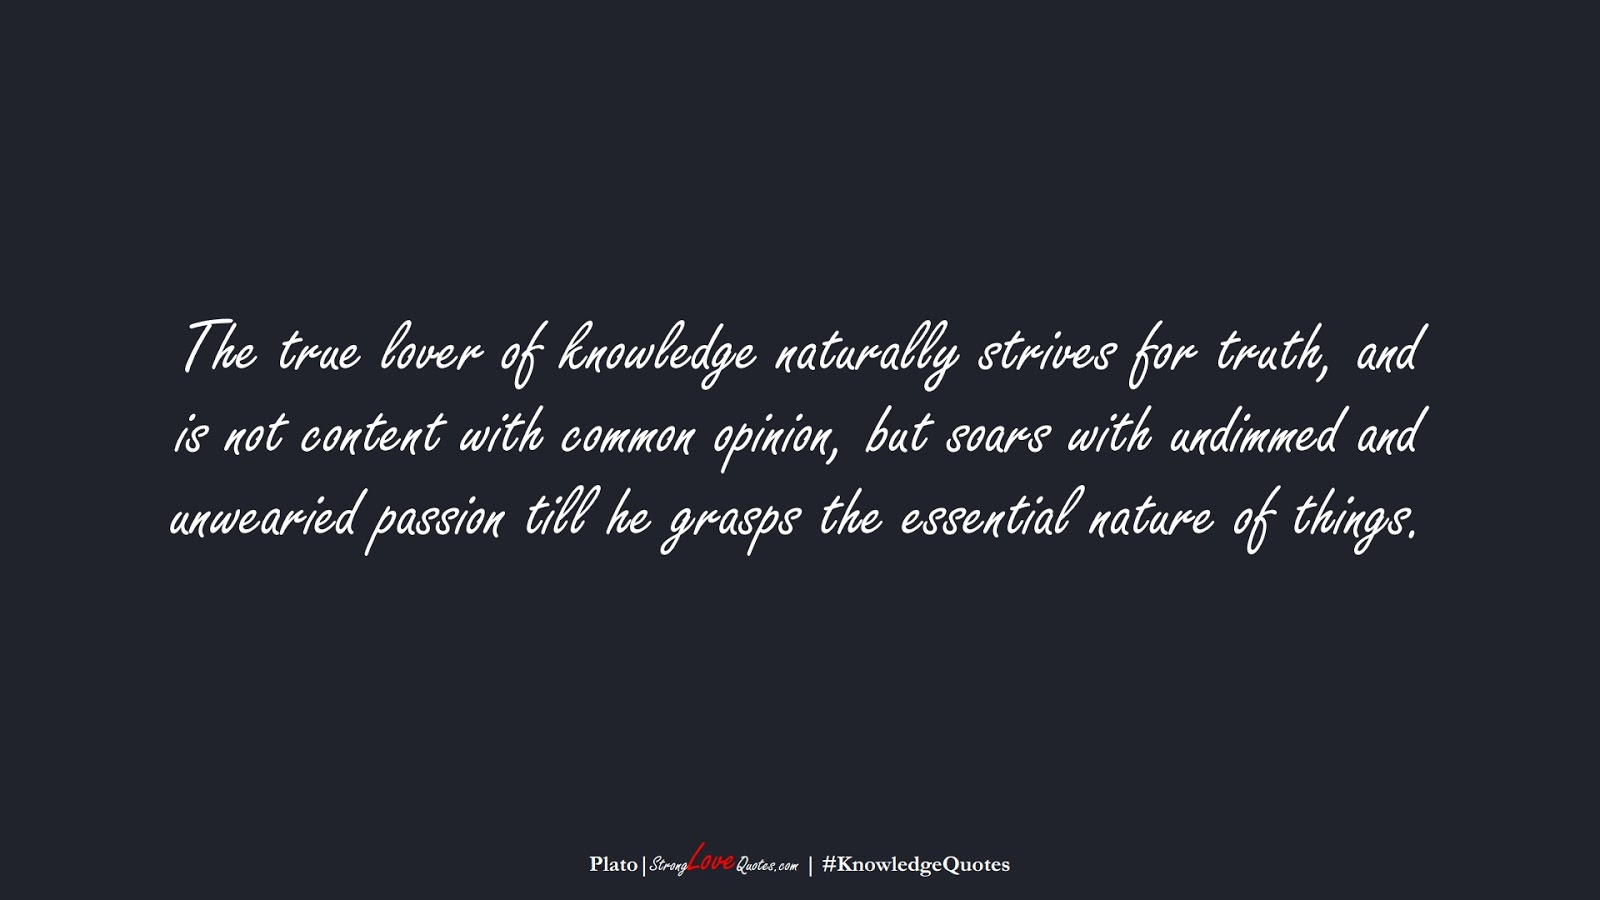 The true lover of knowledge naturally strives for truth, and is not content with common opinion, but soars with undimmed and unwearied passion till he grasps the essential nature of things. (Plato);  #KnowledgeQuotes